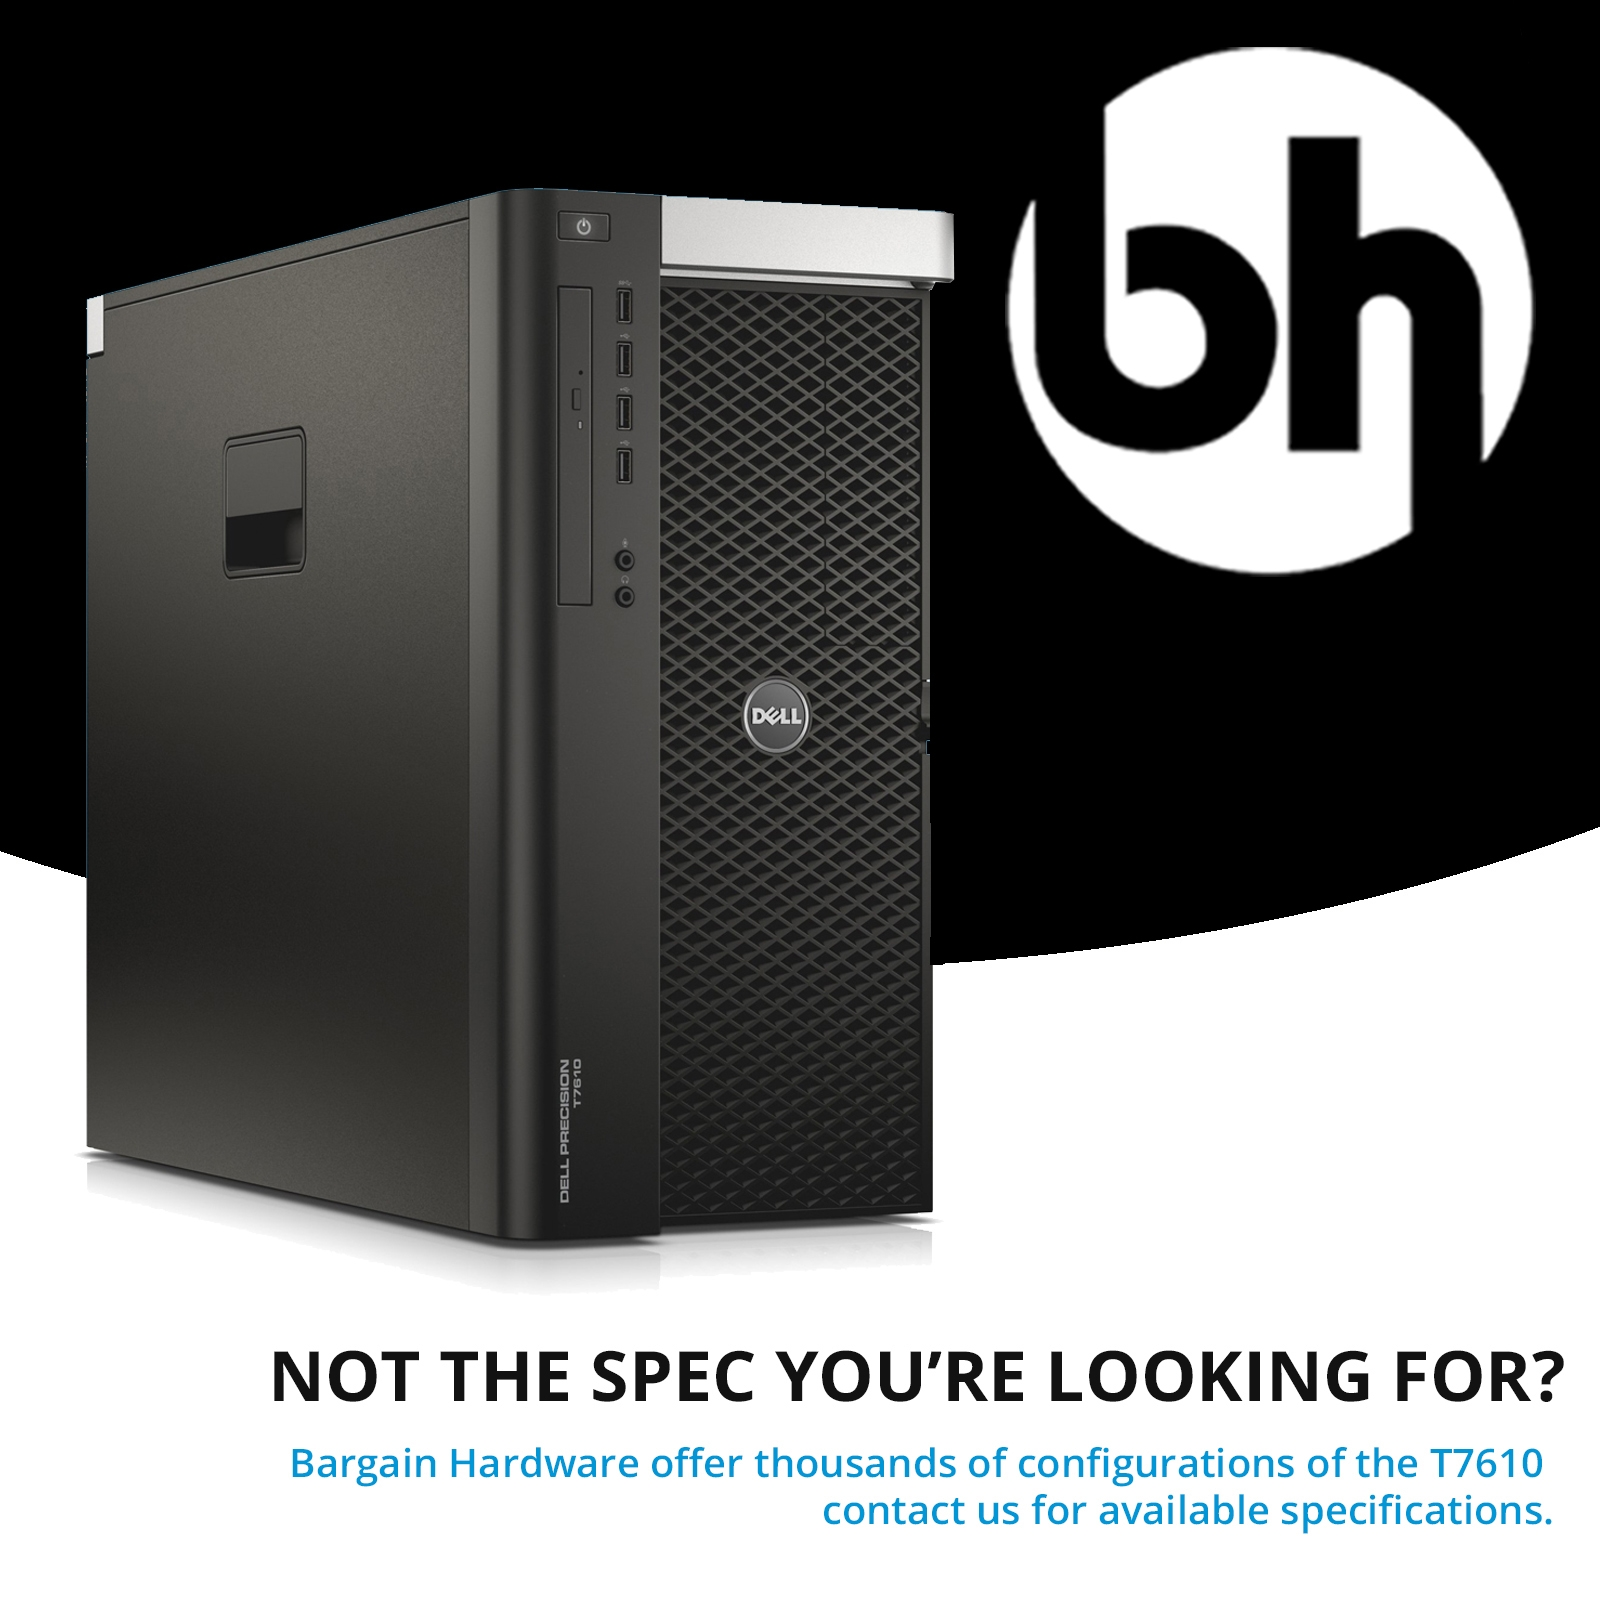 Details about Dell Precision T7610 Tower Server 256GB RAM 2x Eight Core  E5-2687 V2